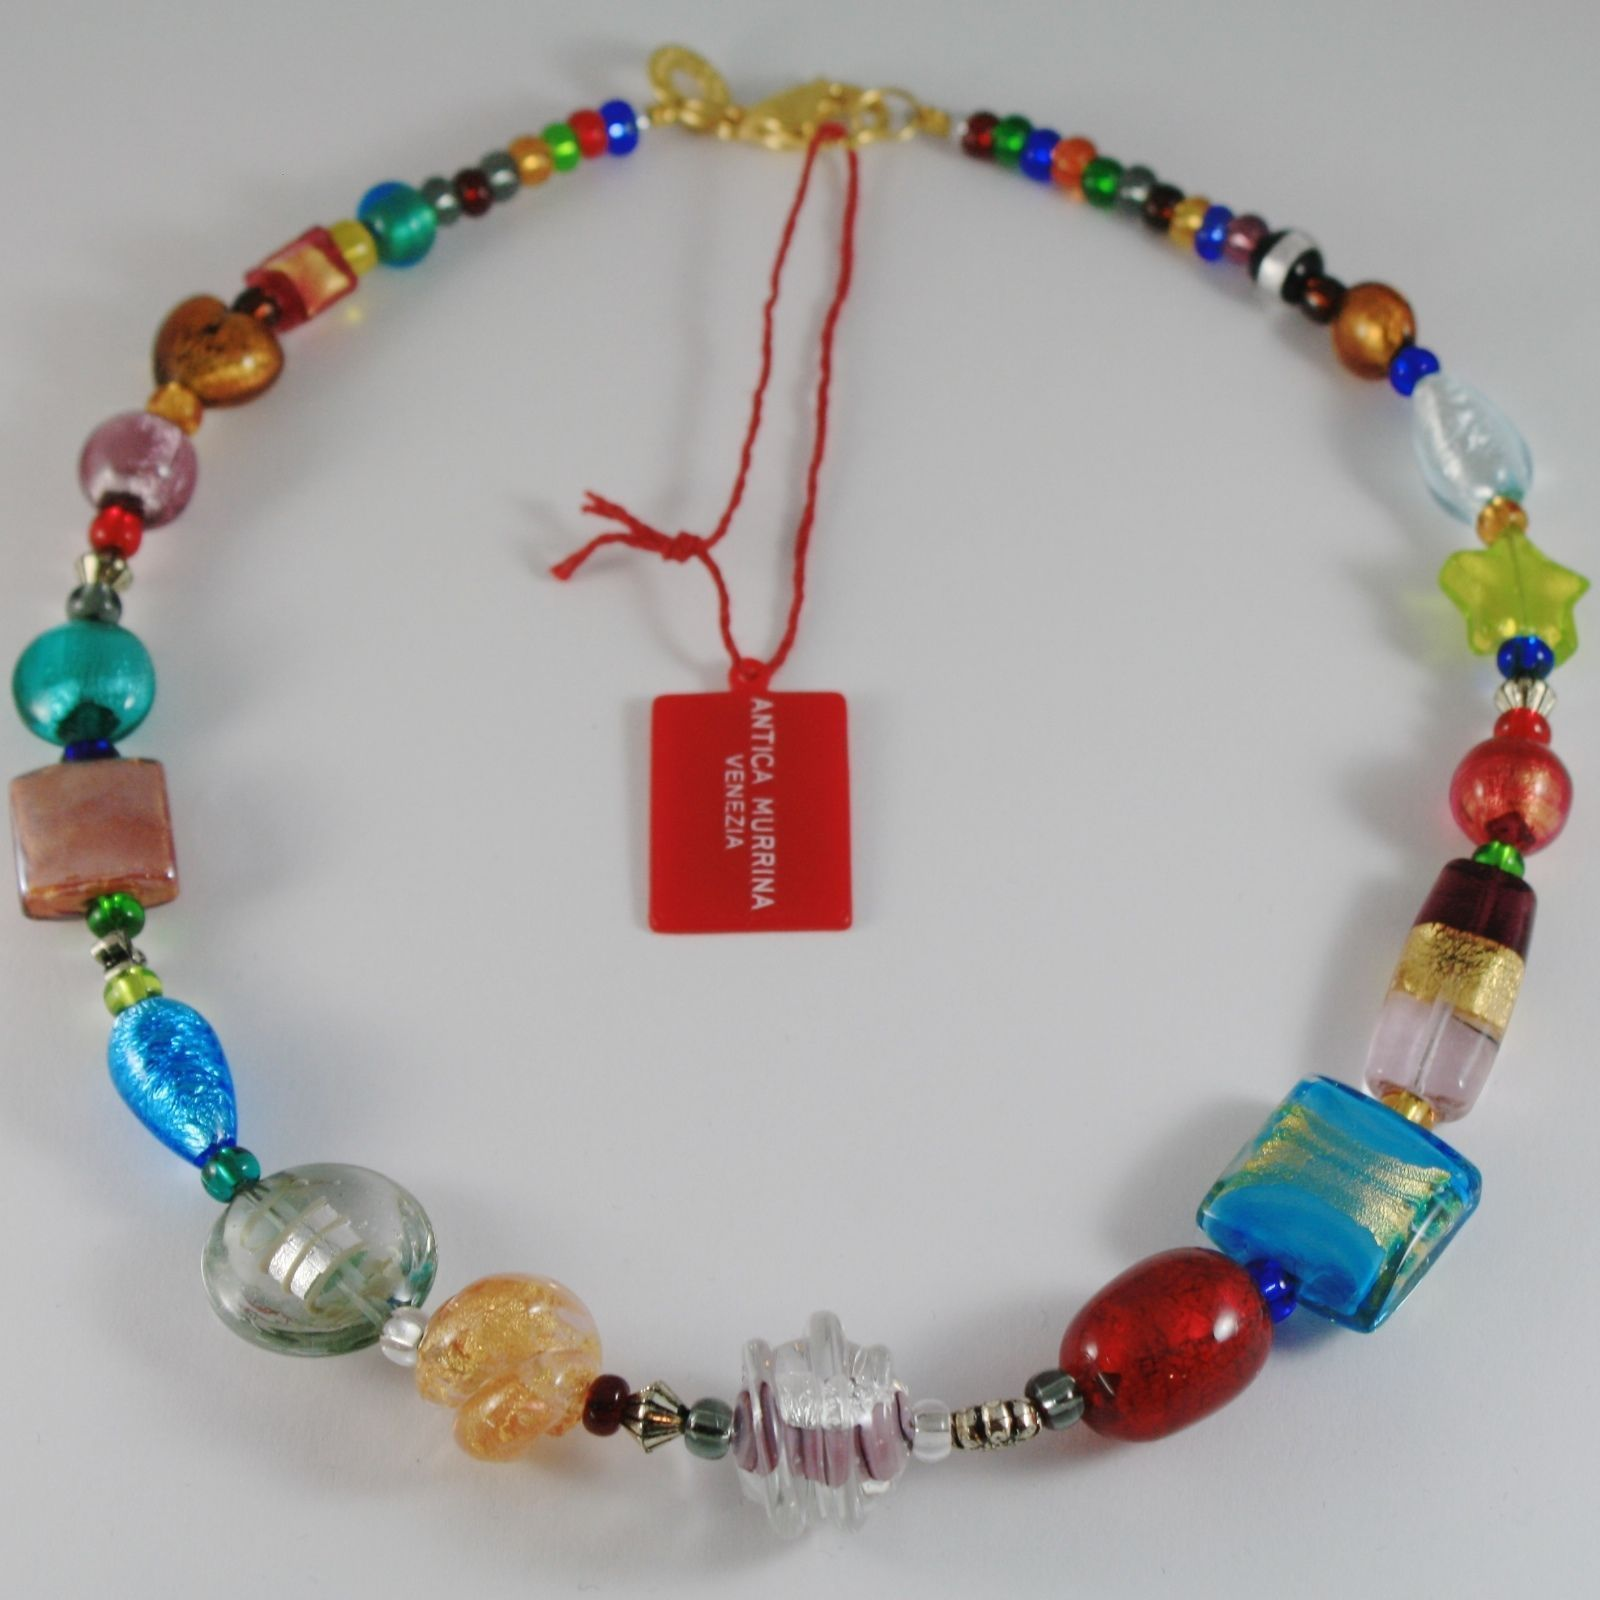 NECKLACE ANTICA MURRINA VENEZIA WITH MURANO GLASS MULTICOLOUR LONG 50 CM